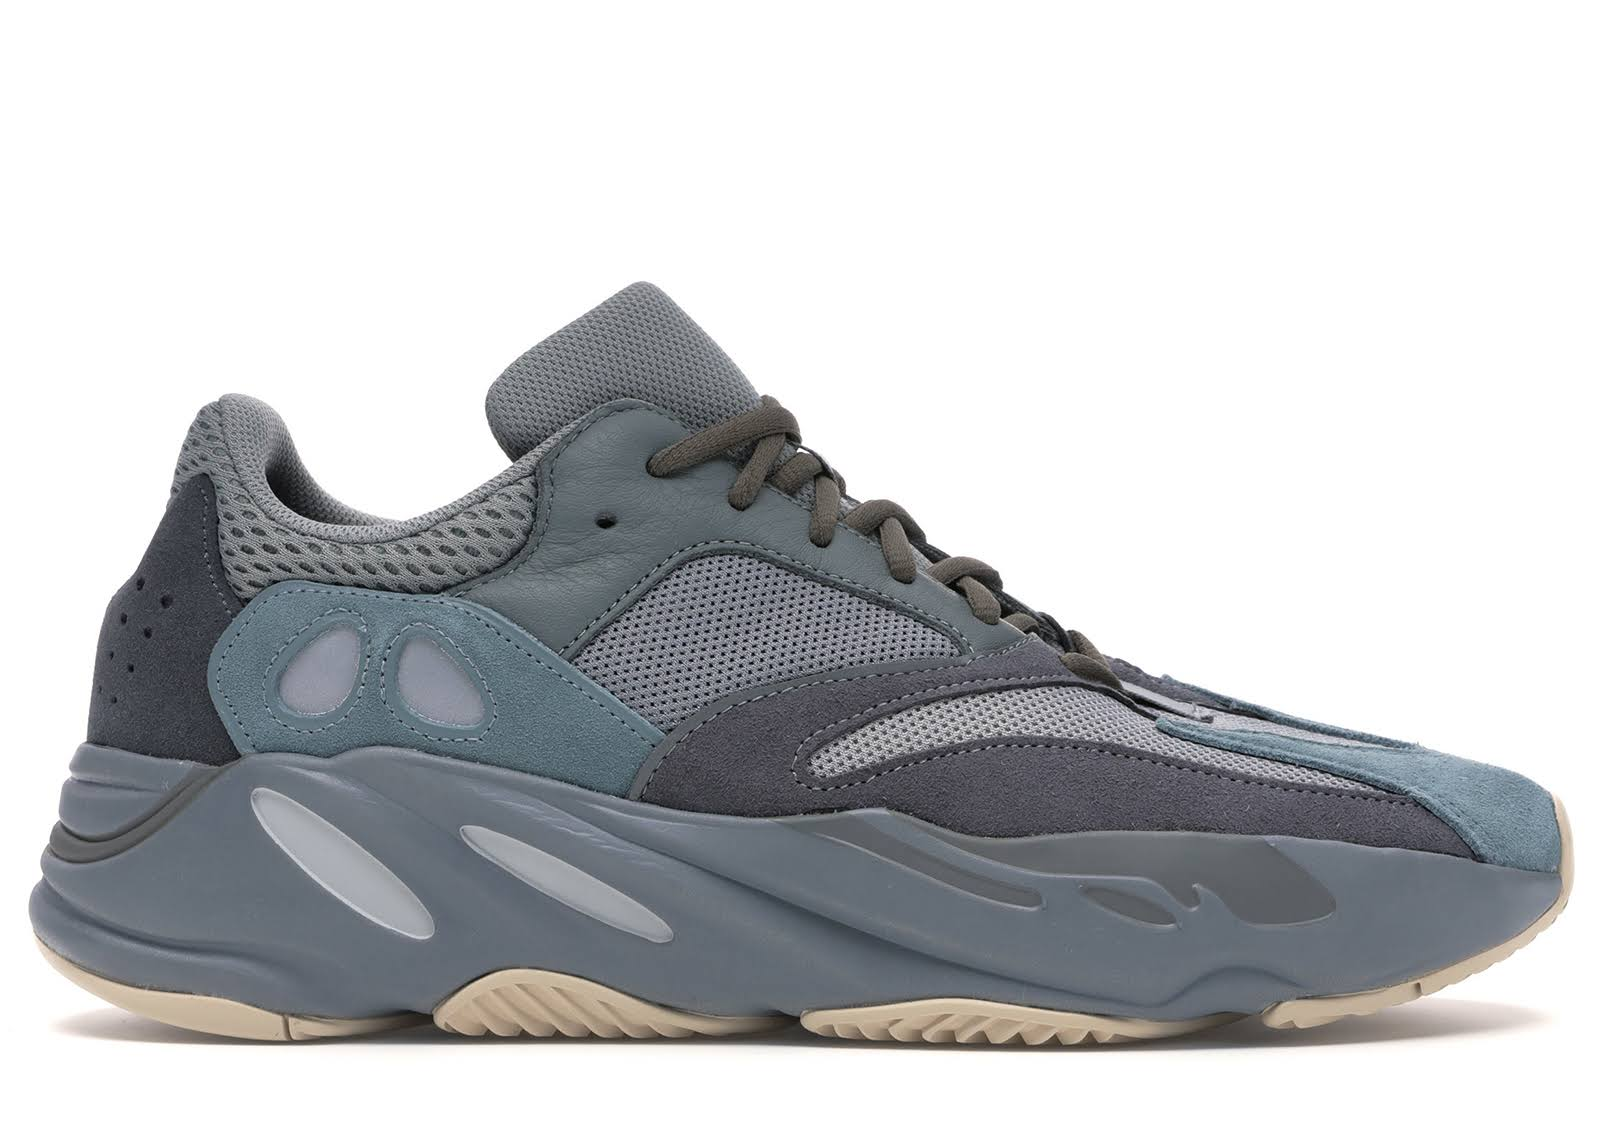 Adidas Yeezy Boost 700 'Teal Blue' Shoes - Size 8.5